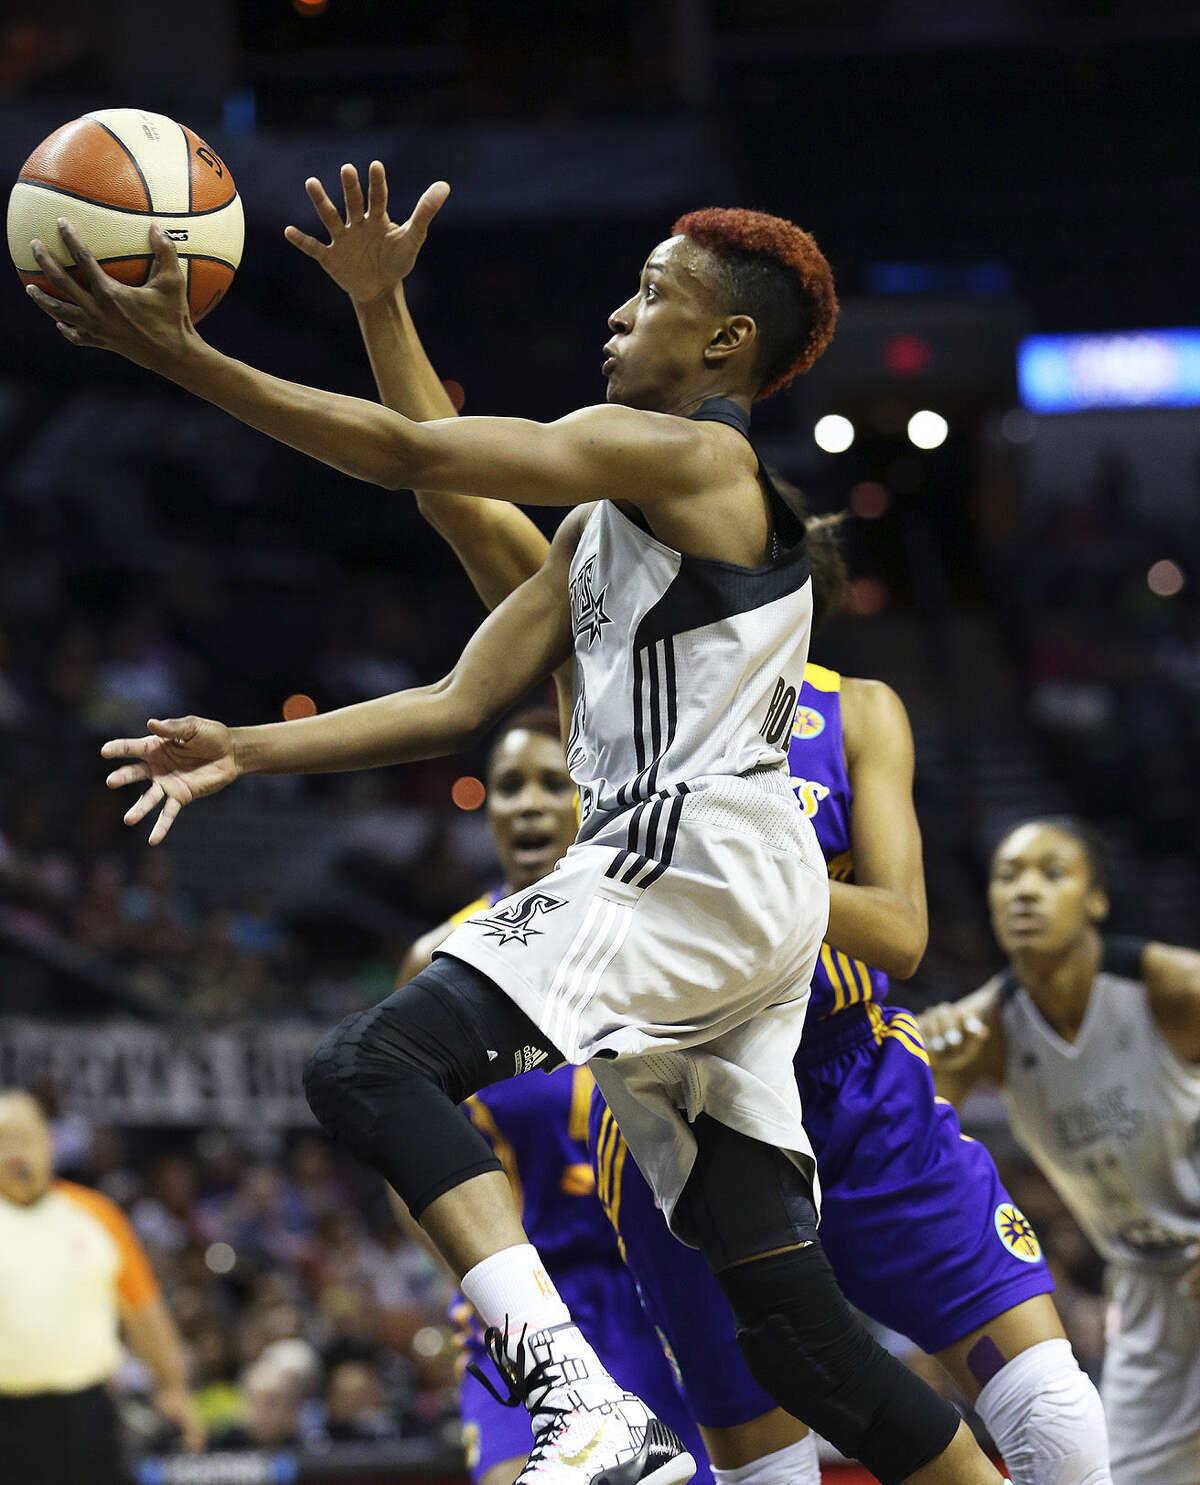 Danielle Robinson, who led all scorers with 24 points, darts to the basket for a layup attempt in the first half of the Stars' blowout victory at the AT&T Center.